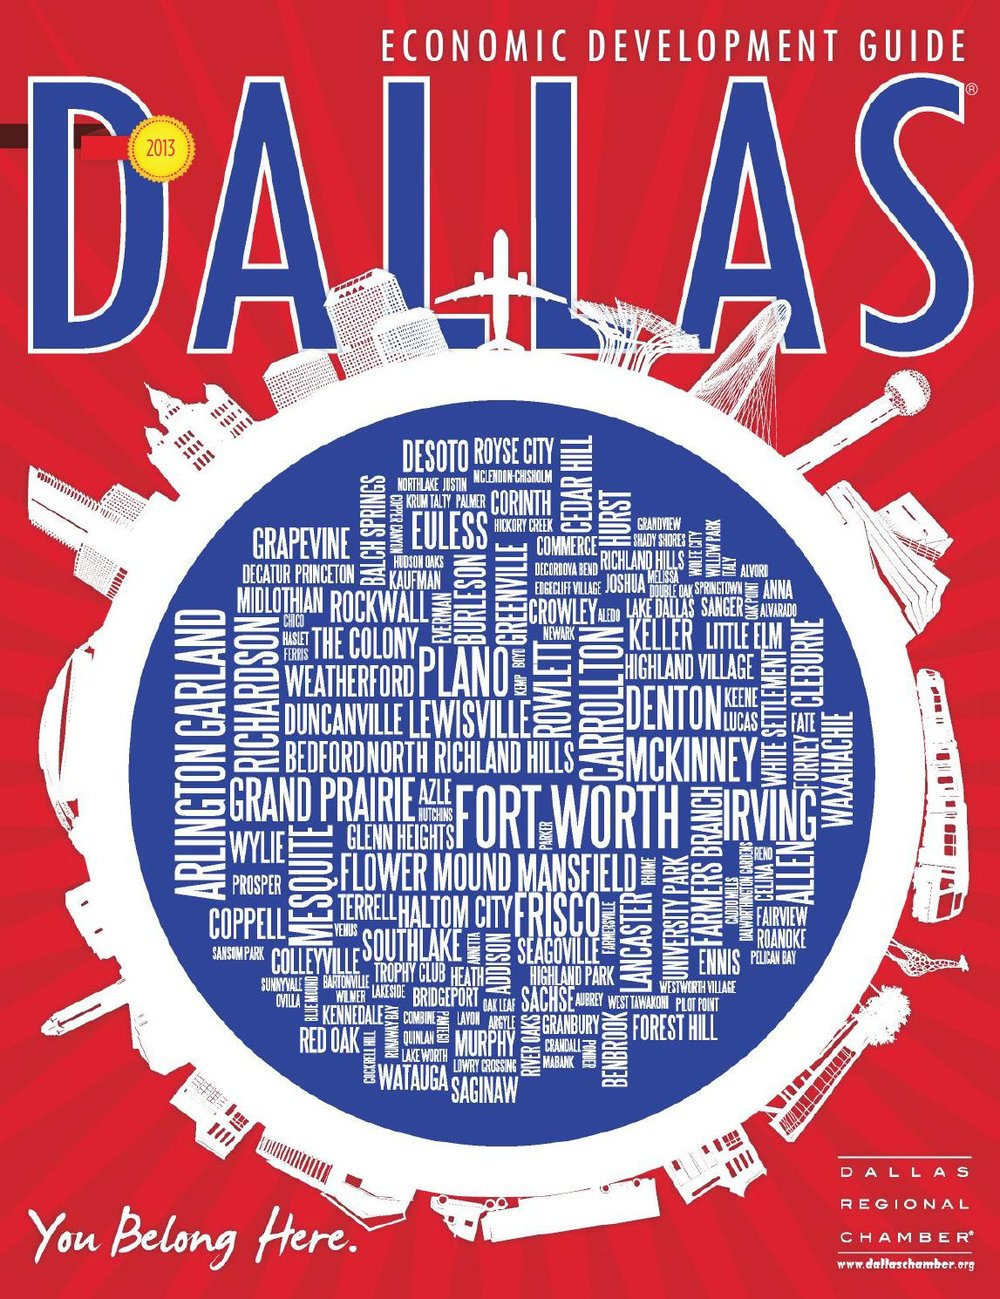 Dallas Economic Development 2013.jpg